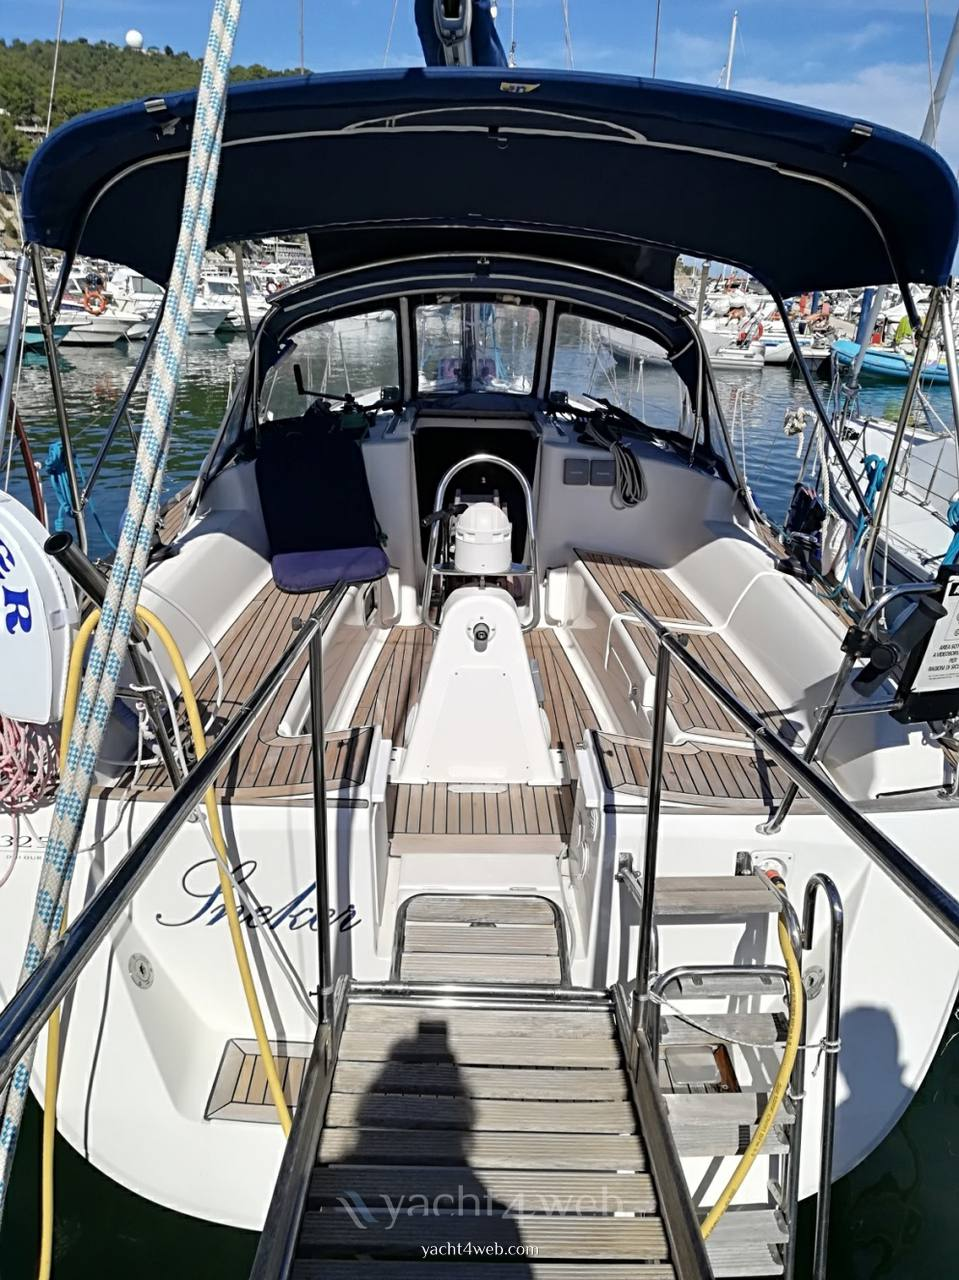 DUFOUR 325 gran large Sailing boat used for sale